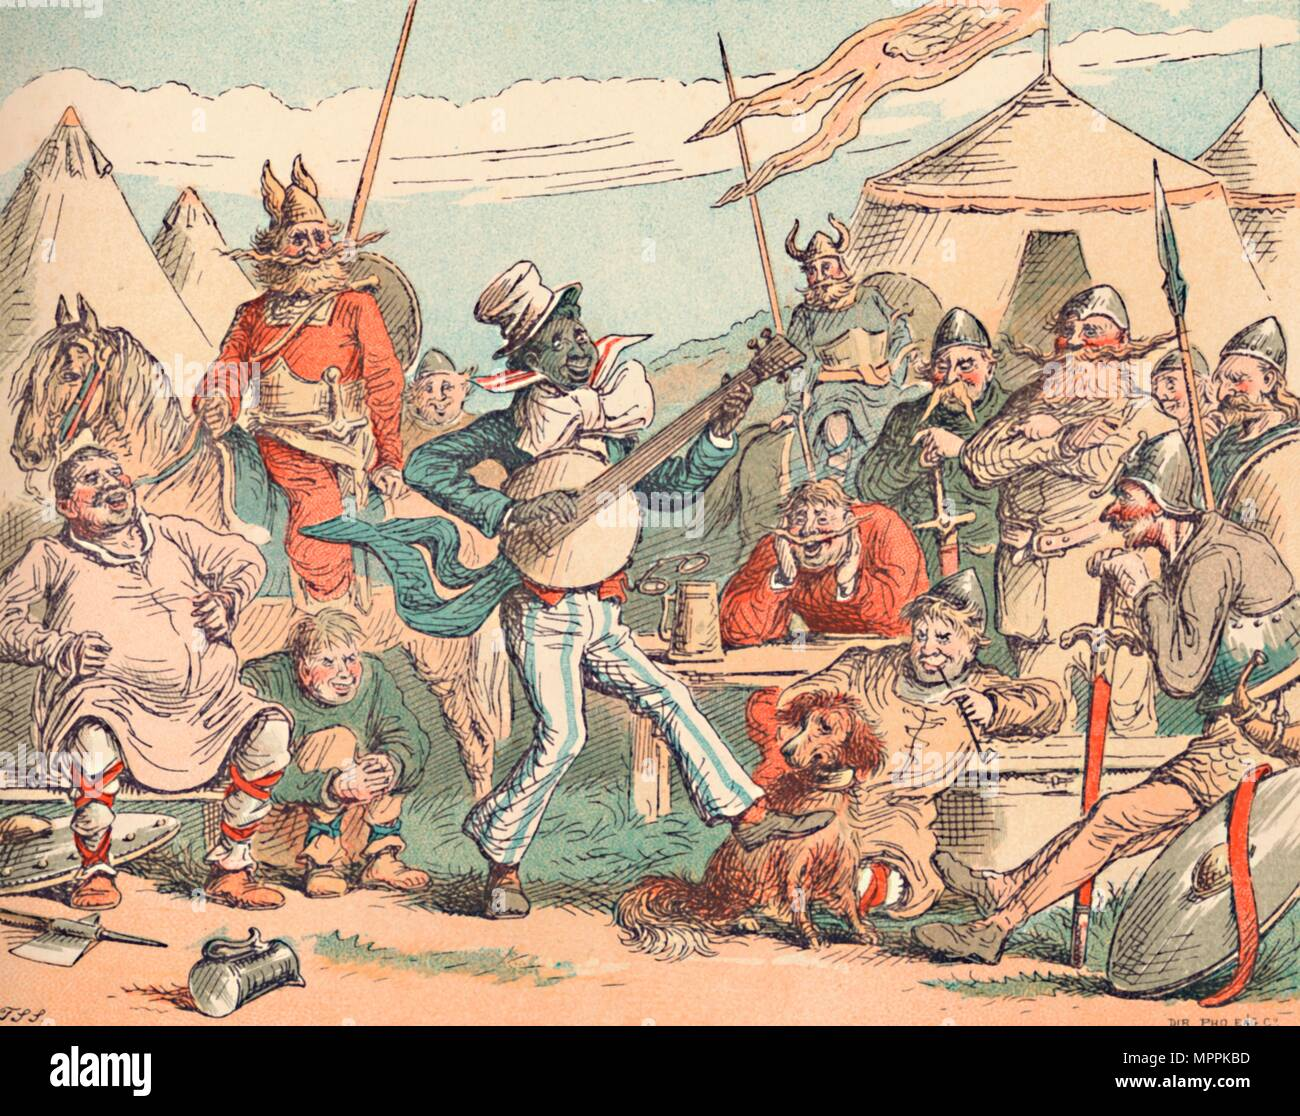 'King Alfred in the Danish Camp', c1884. Artist: Thomas Strong Seccombe. - Stock Image